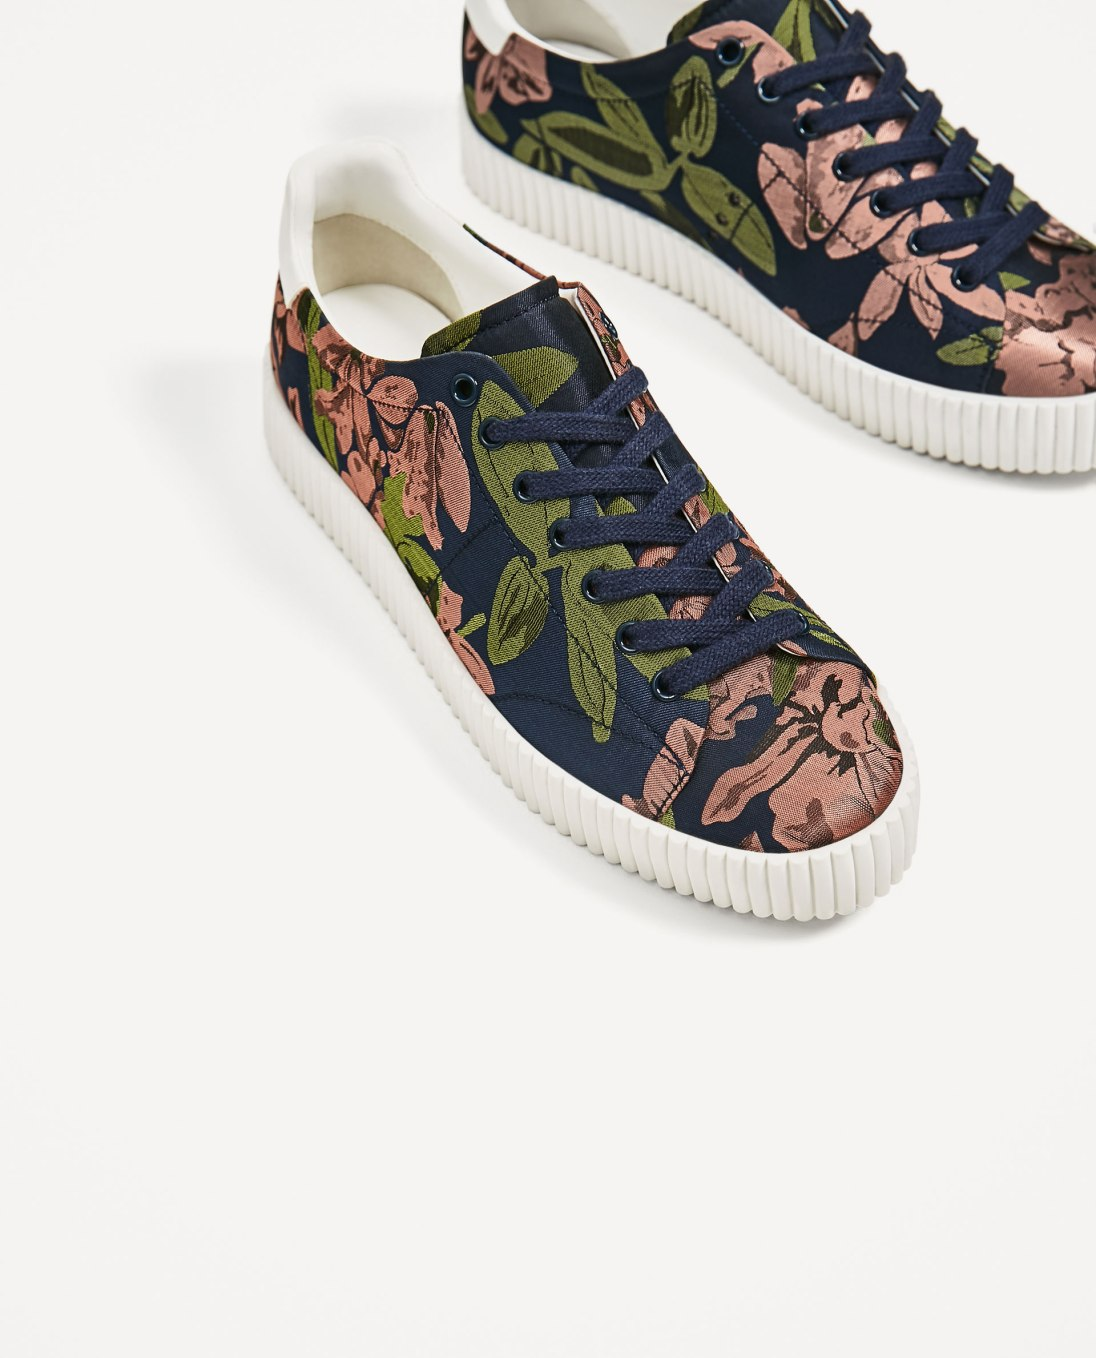 Zara floral trainers